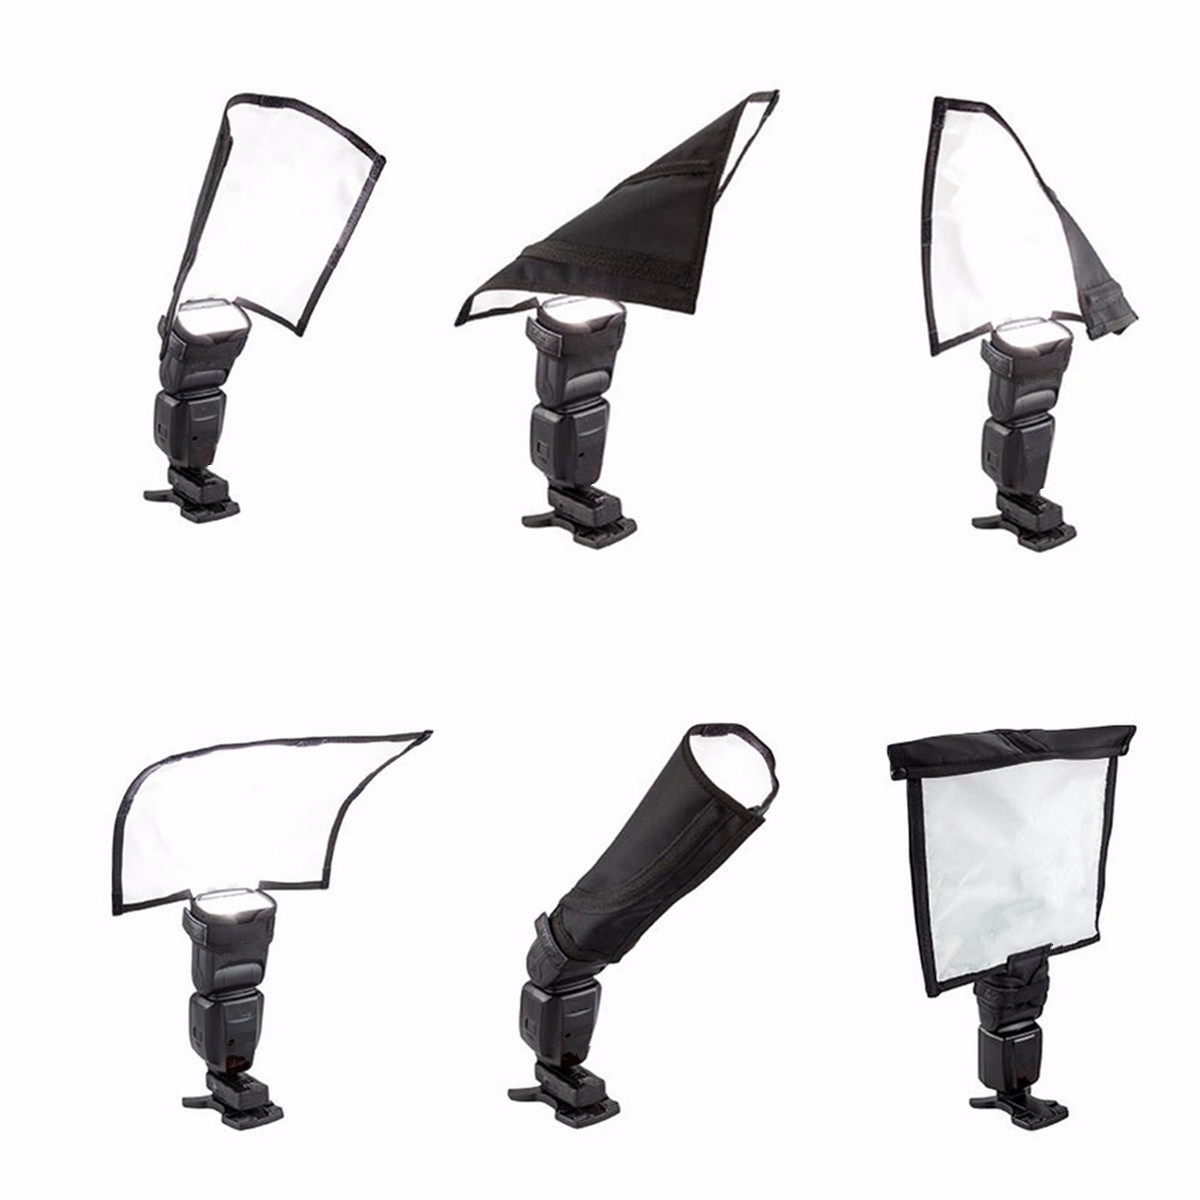 Foldable Speedlight Reflector Speedlite Spotlighting Flash Light Softbox Diffuser